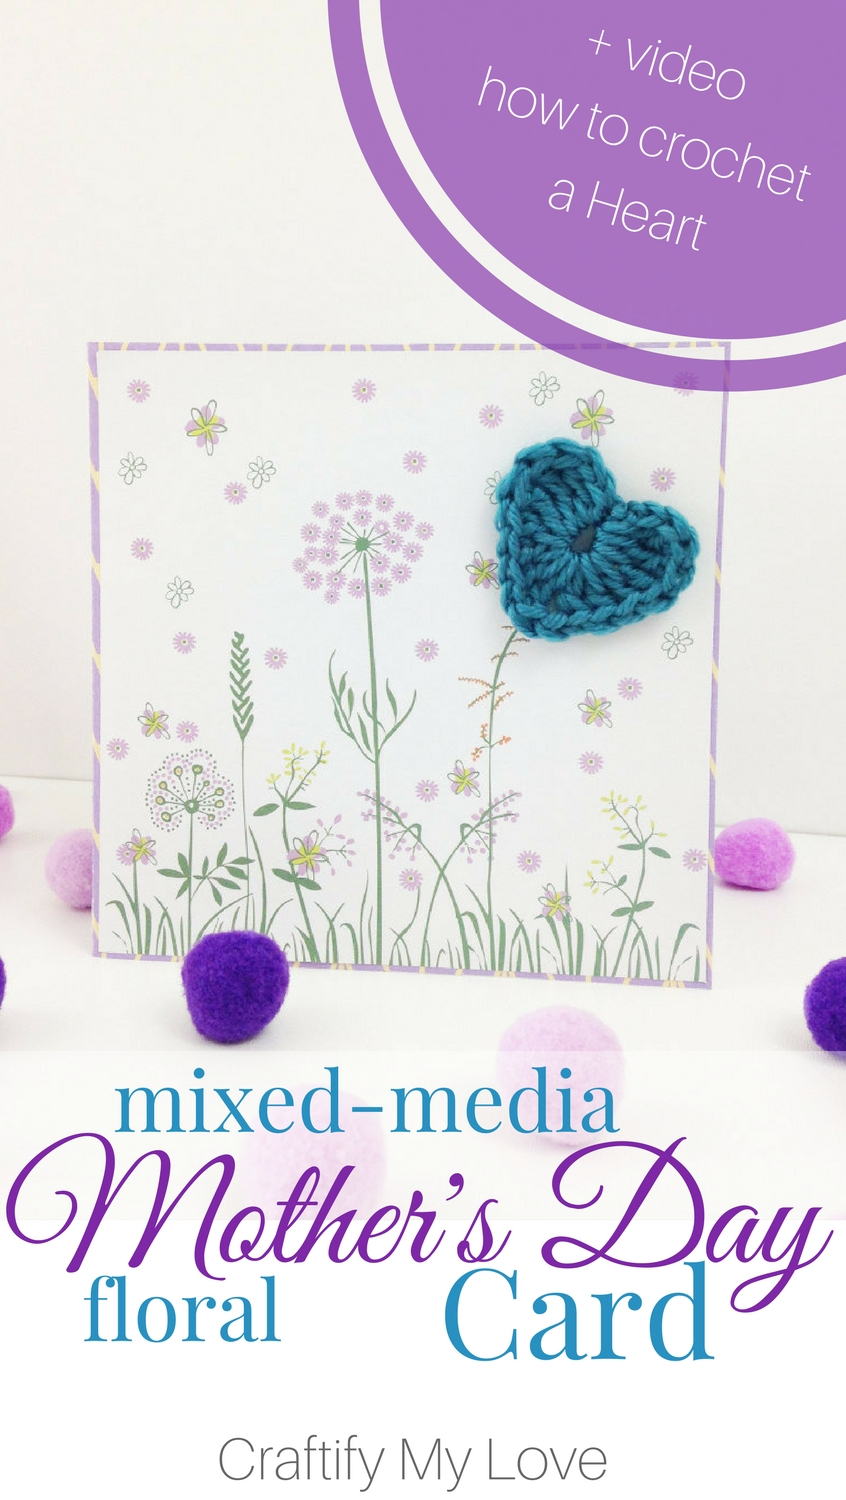 Super easy tutorial for an absolutely darling mixed media Mother's Day card that is made in literally no time at all. Very detailed paper crafts directions and even includes a video on how to crochet that heart. | #mixedmedia #cardmaking #mothersday #papercrafts #birthdaycard